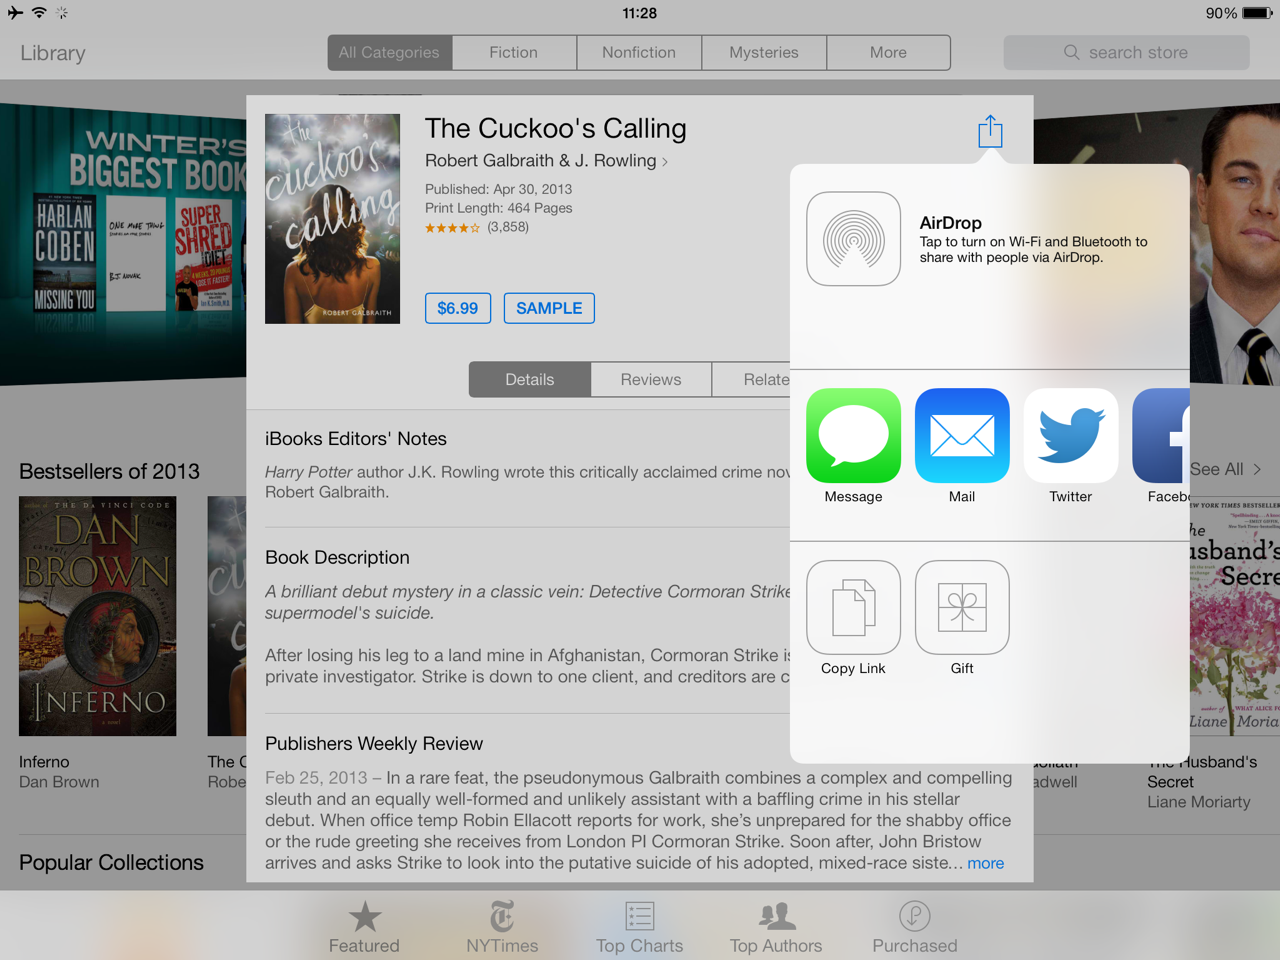 Apple Finally Enables Gifting Option In iBooks Store Just In Time For The Holidays